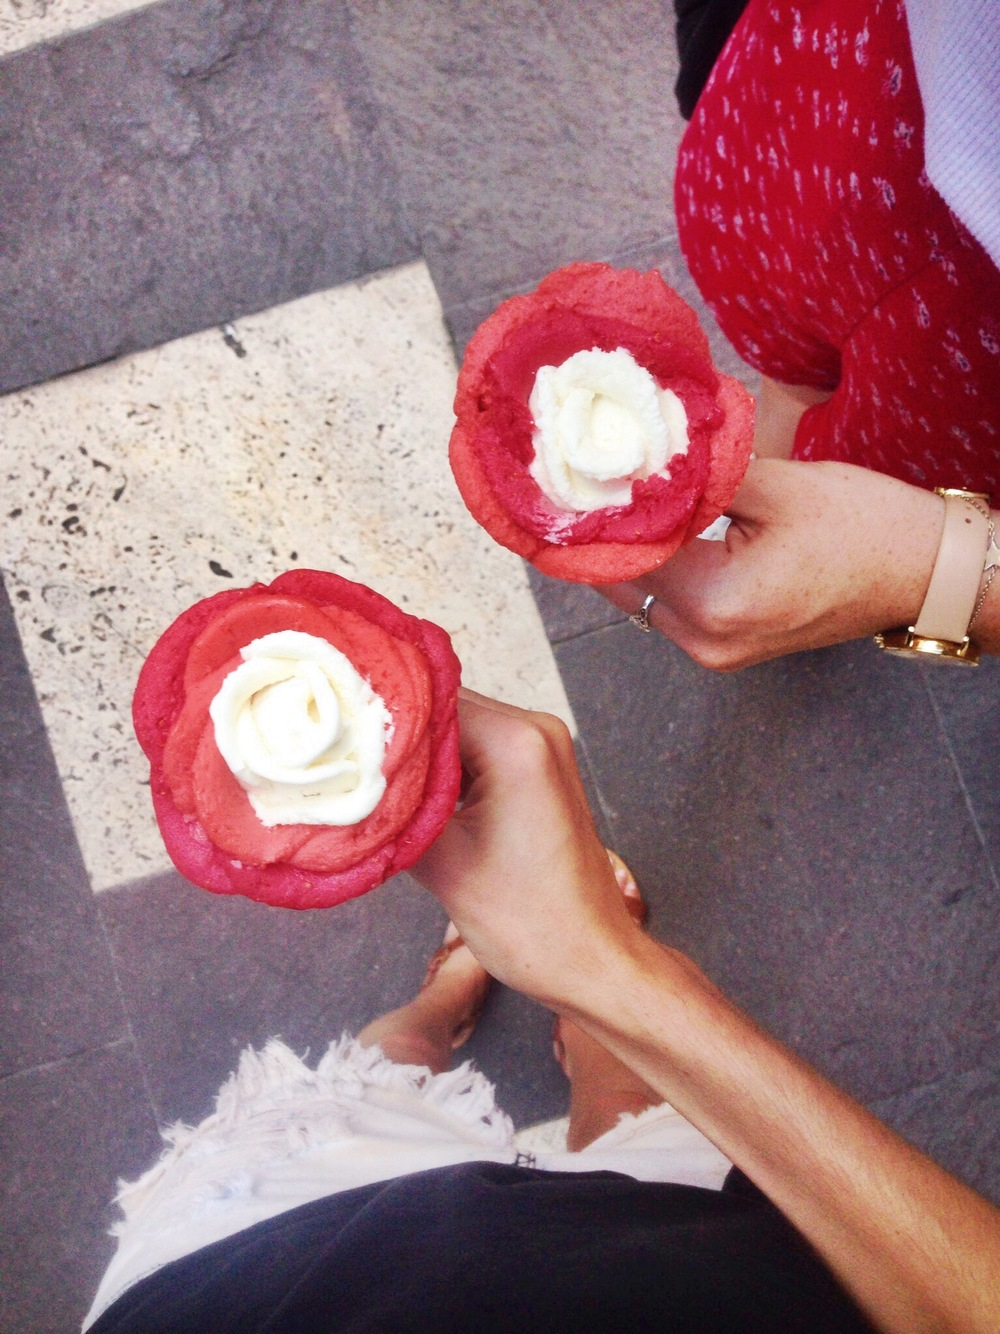 Feeding our gelato addiction with roses